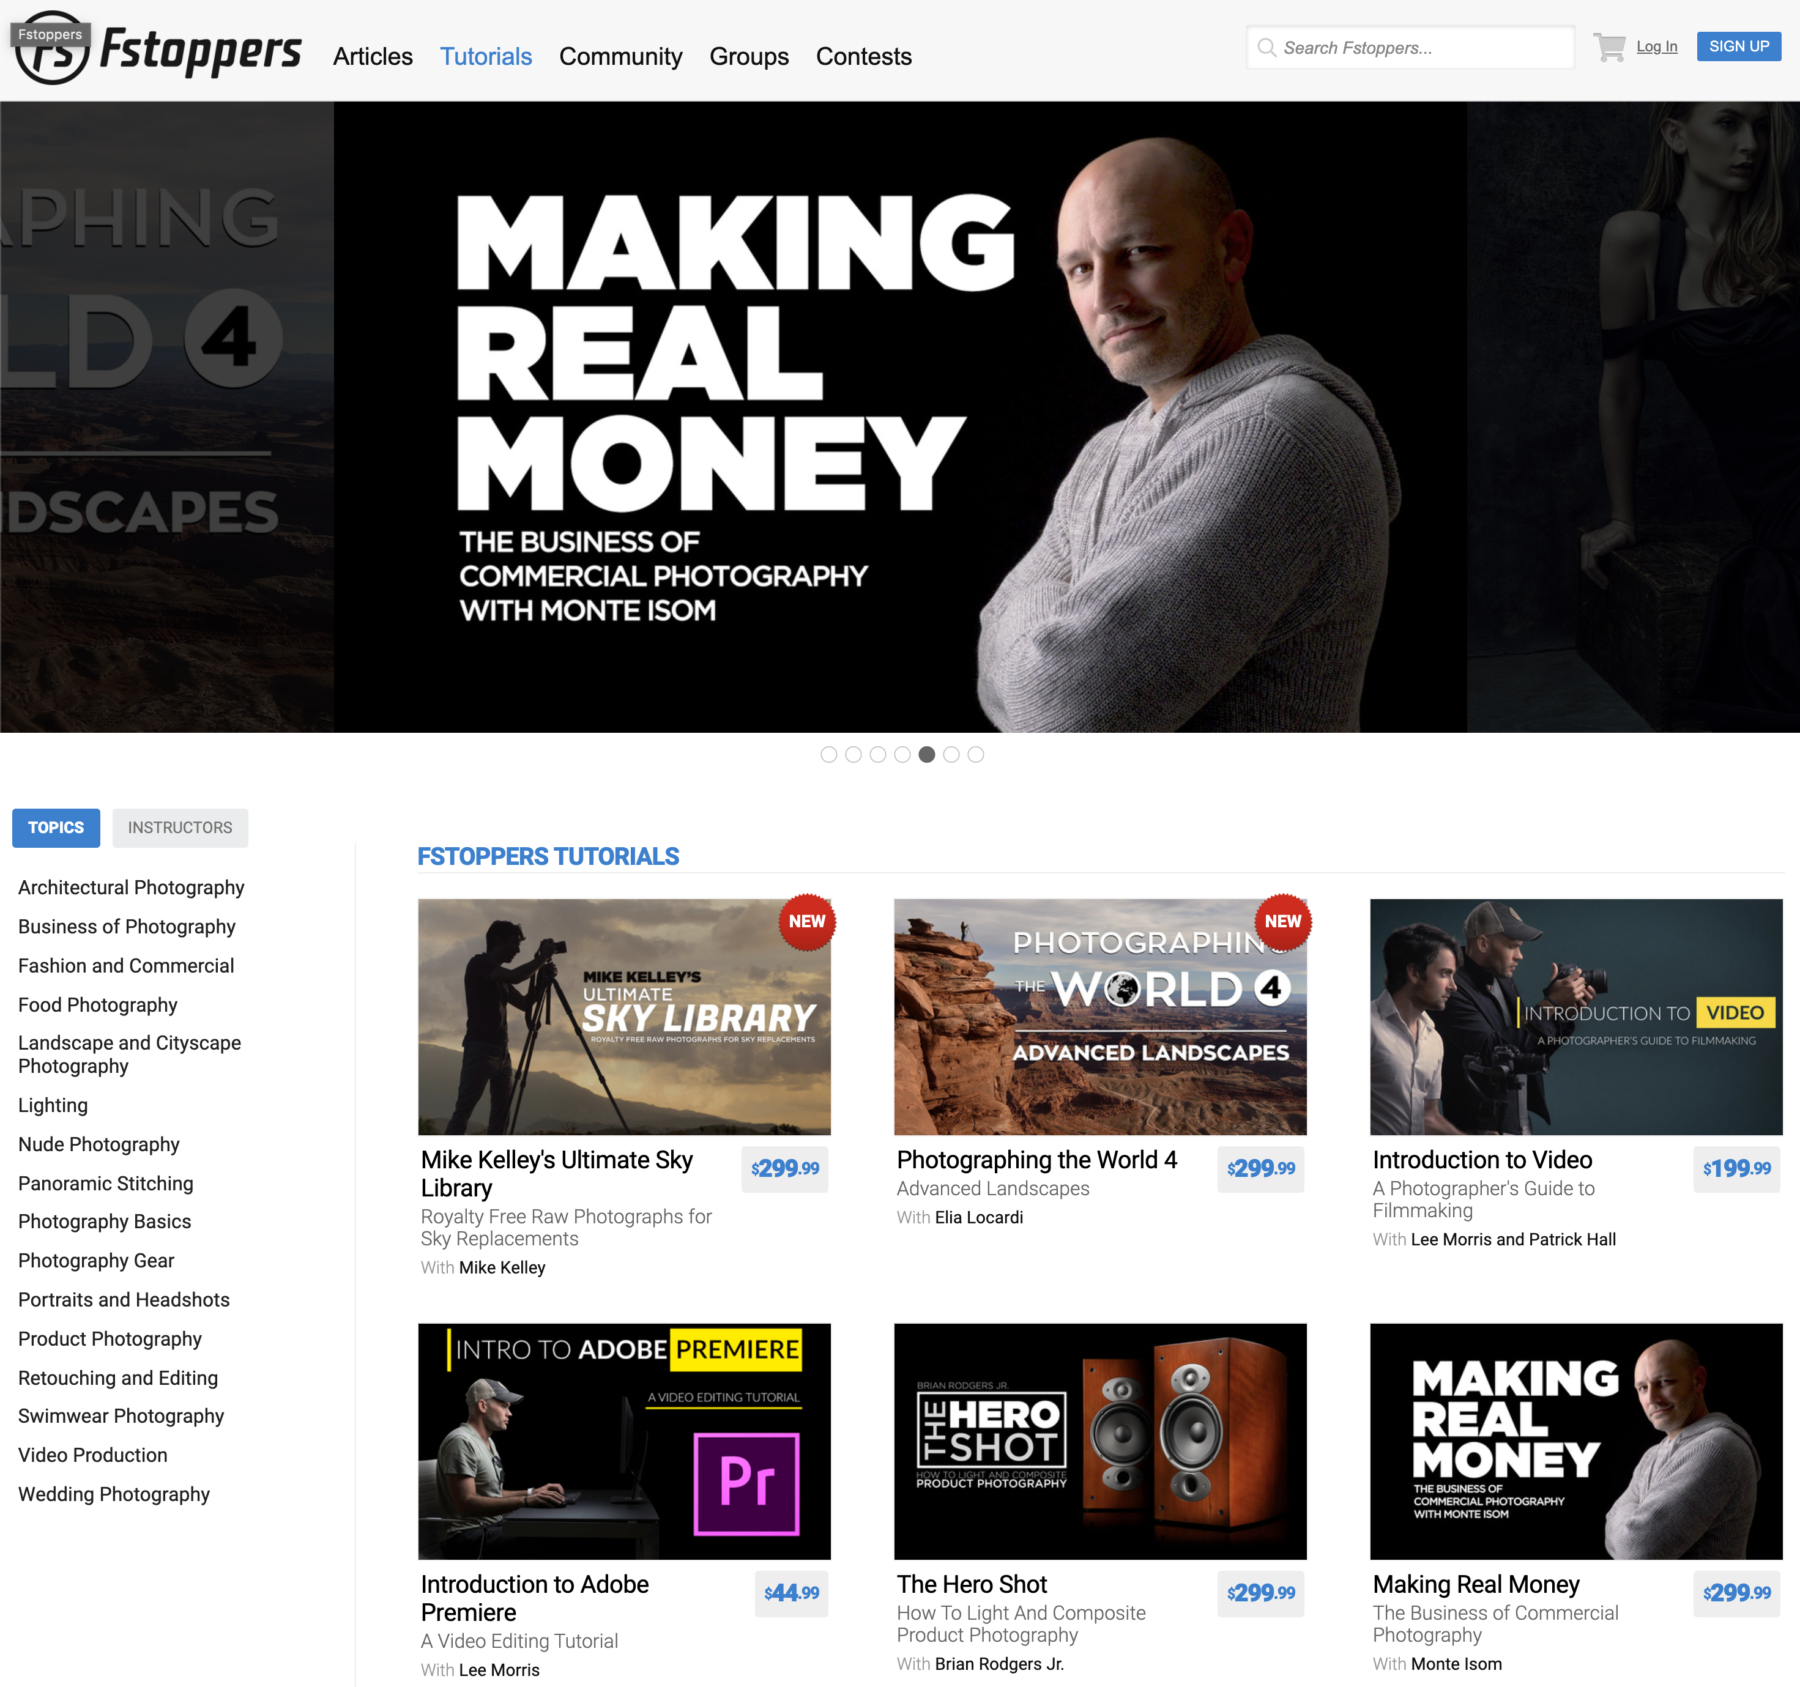 Fstoppers photography, video and business courses